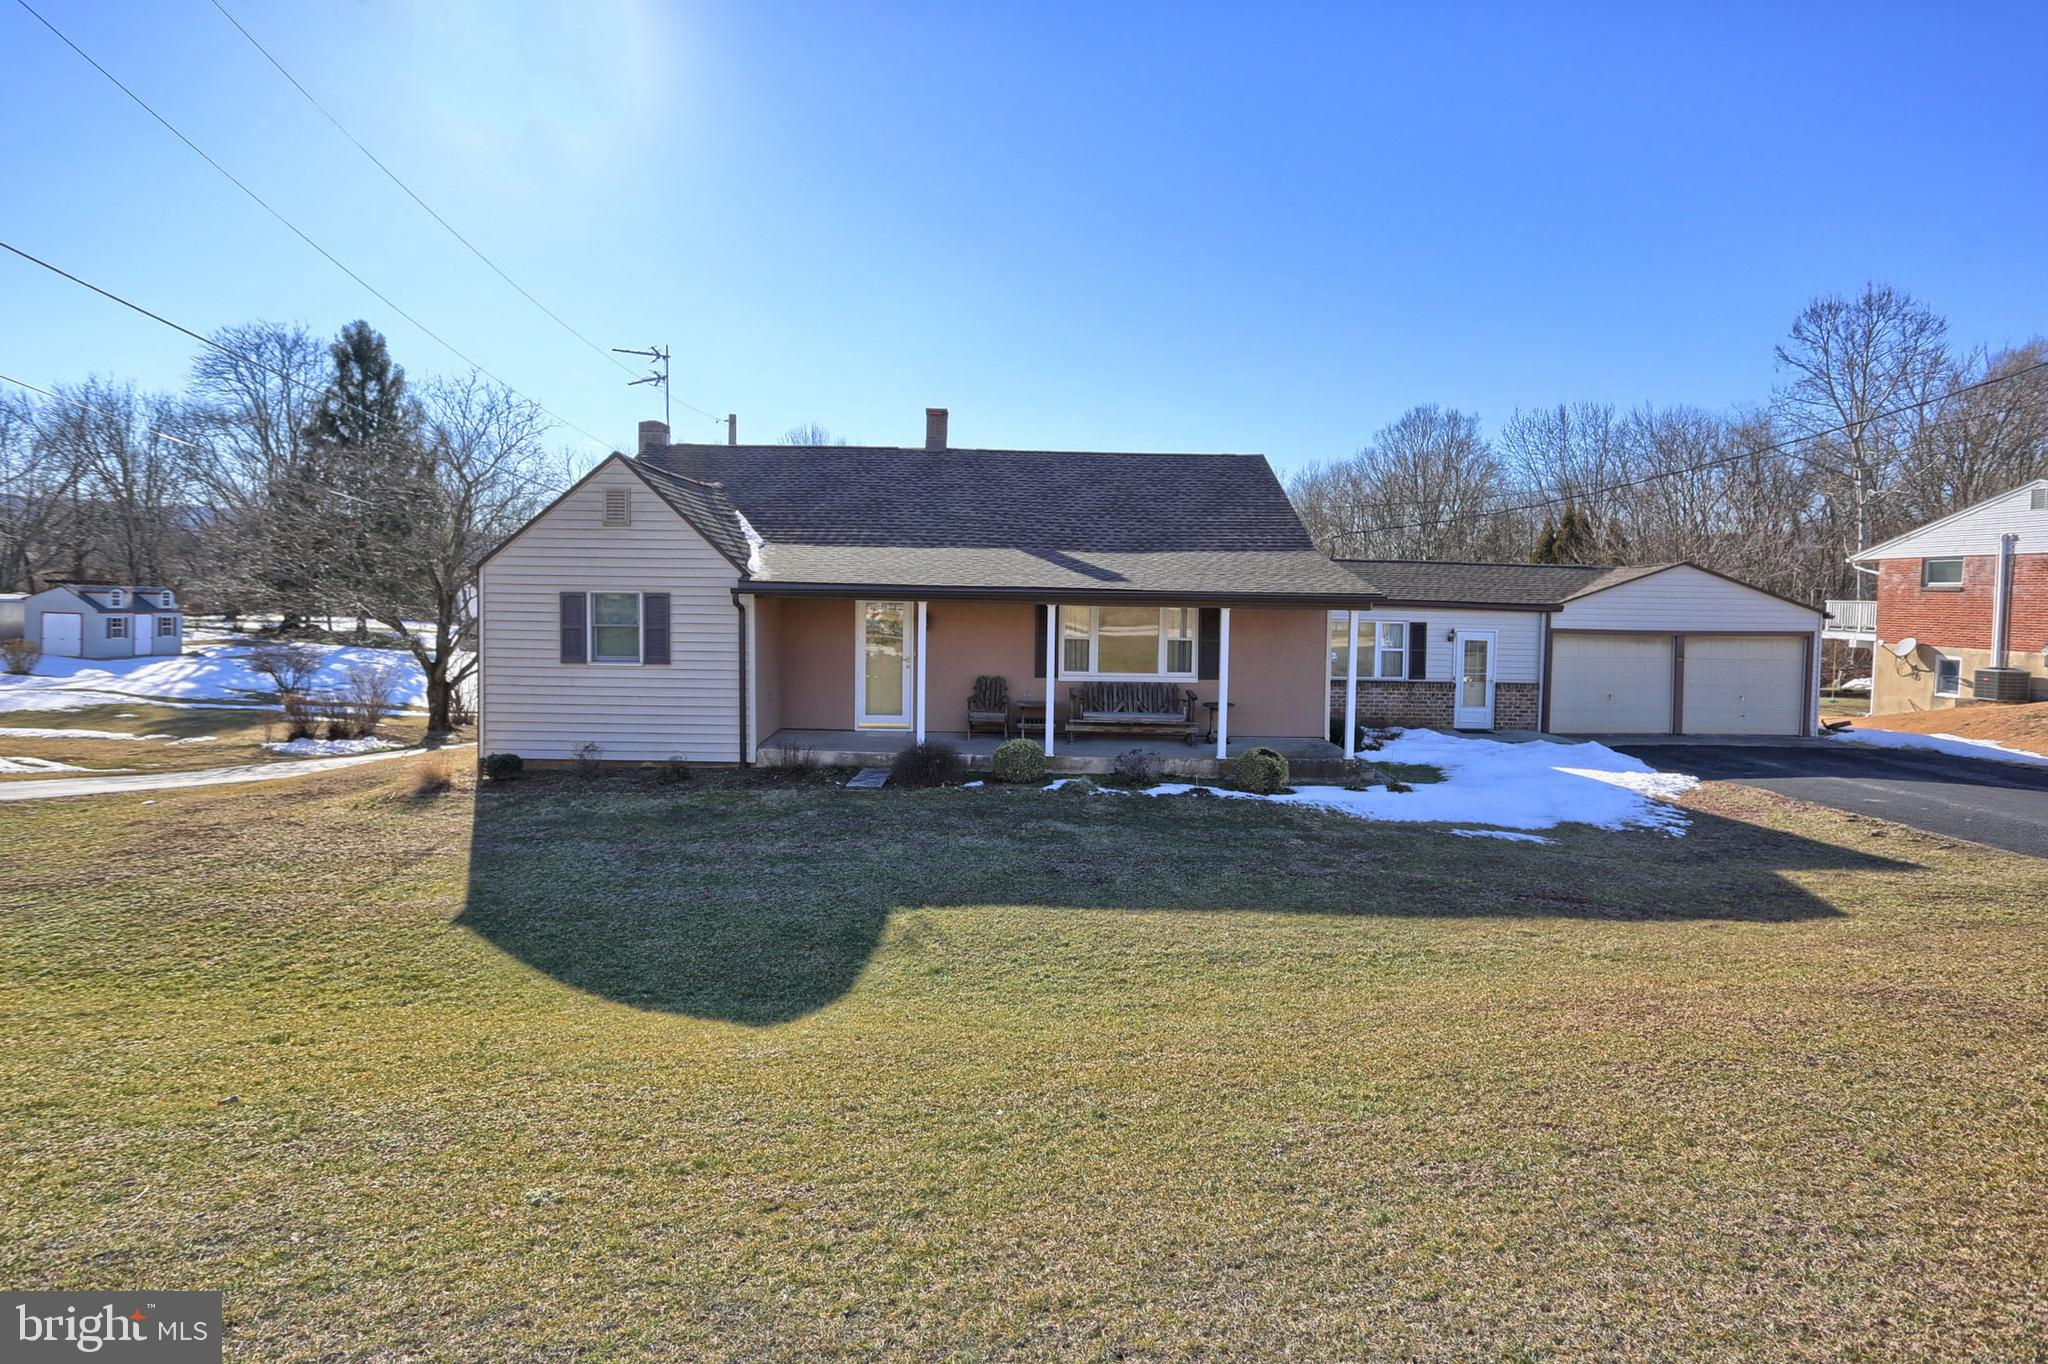 960 PETERS MOUNTAIN ROAD, DAUPHIN, PA 17018